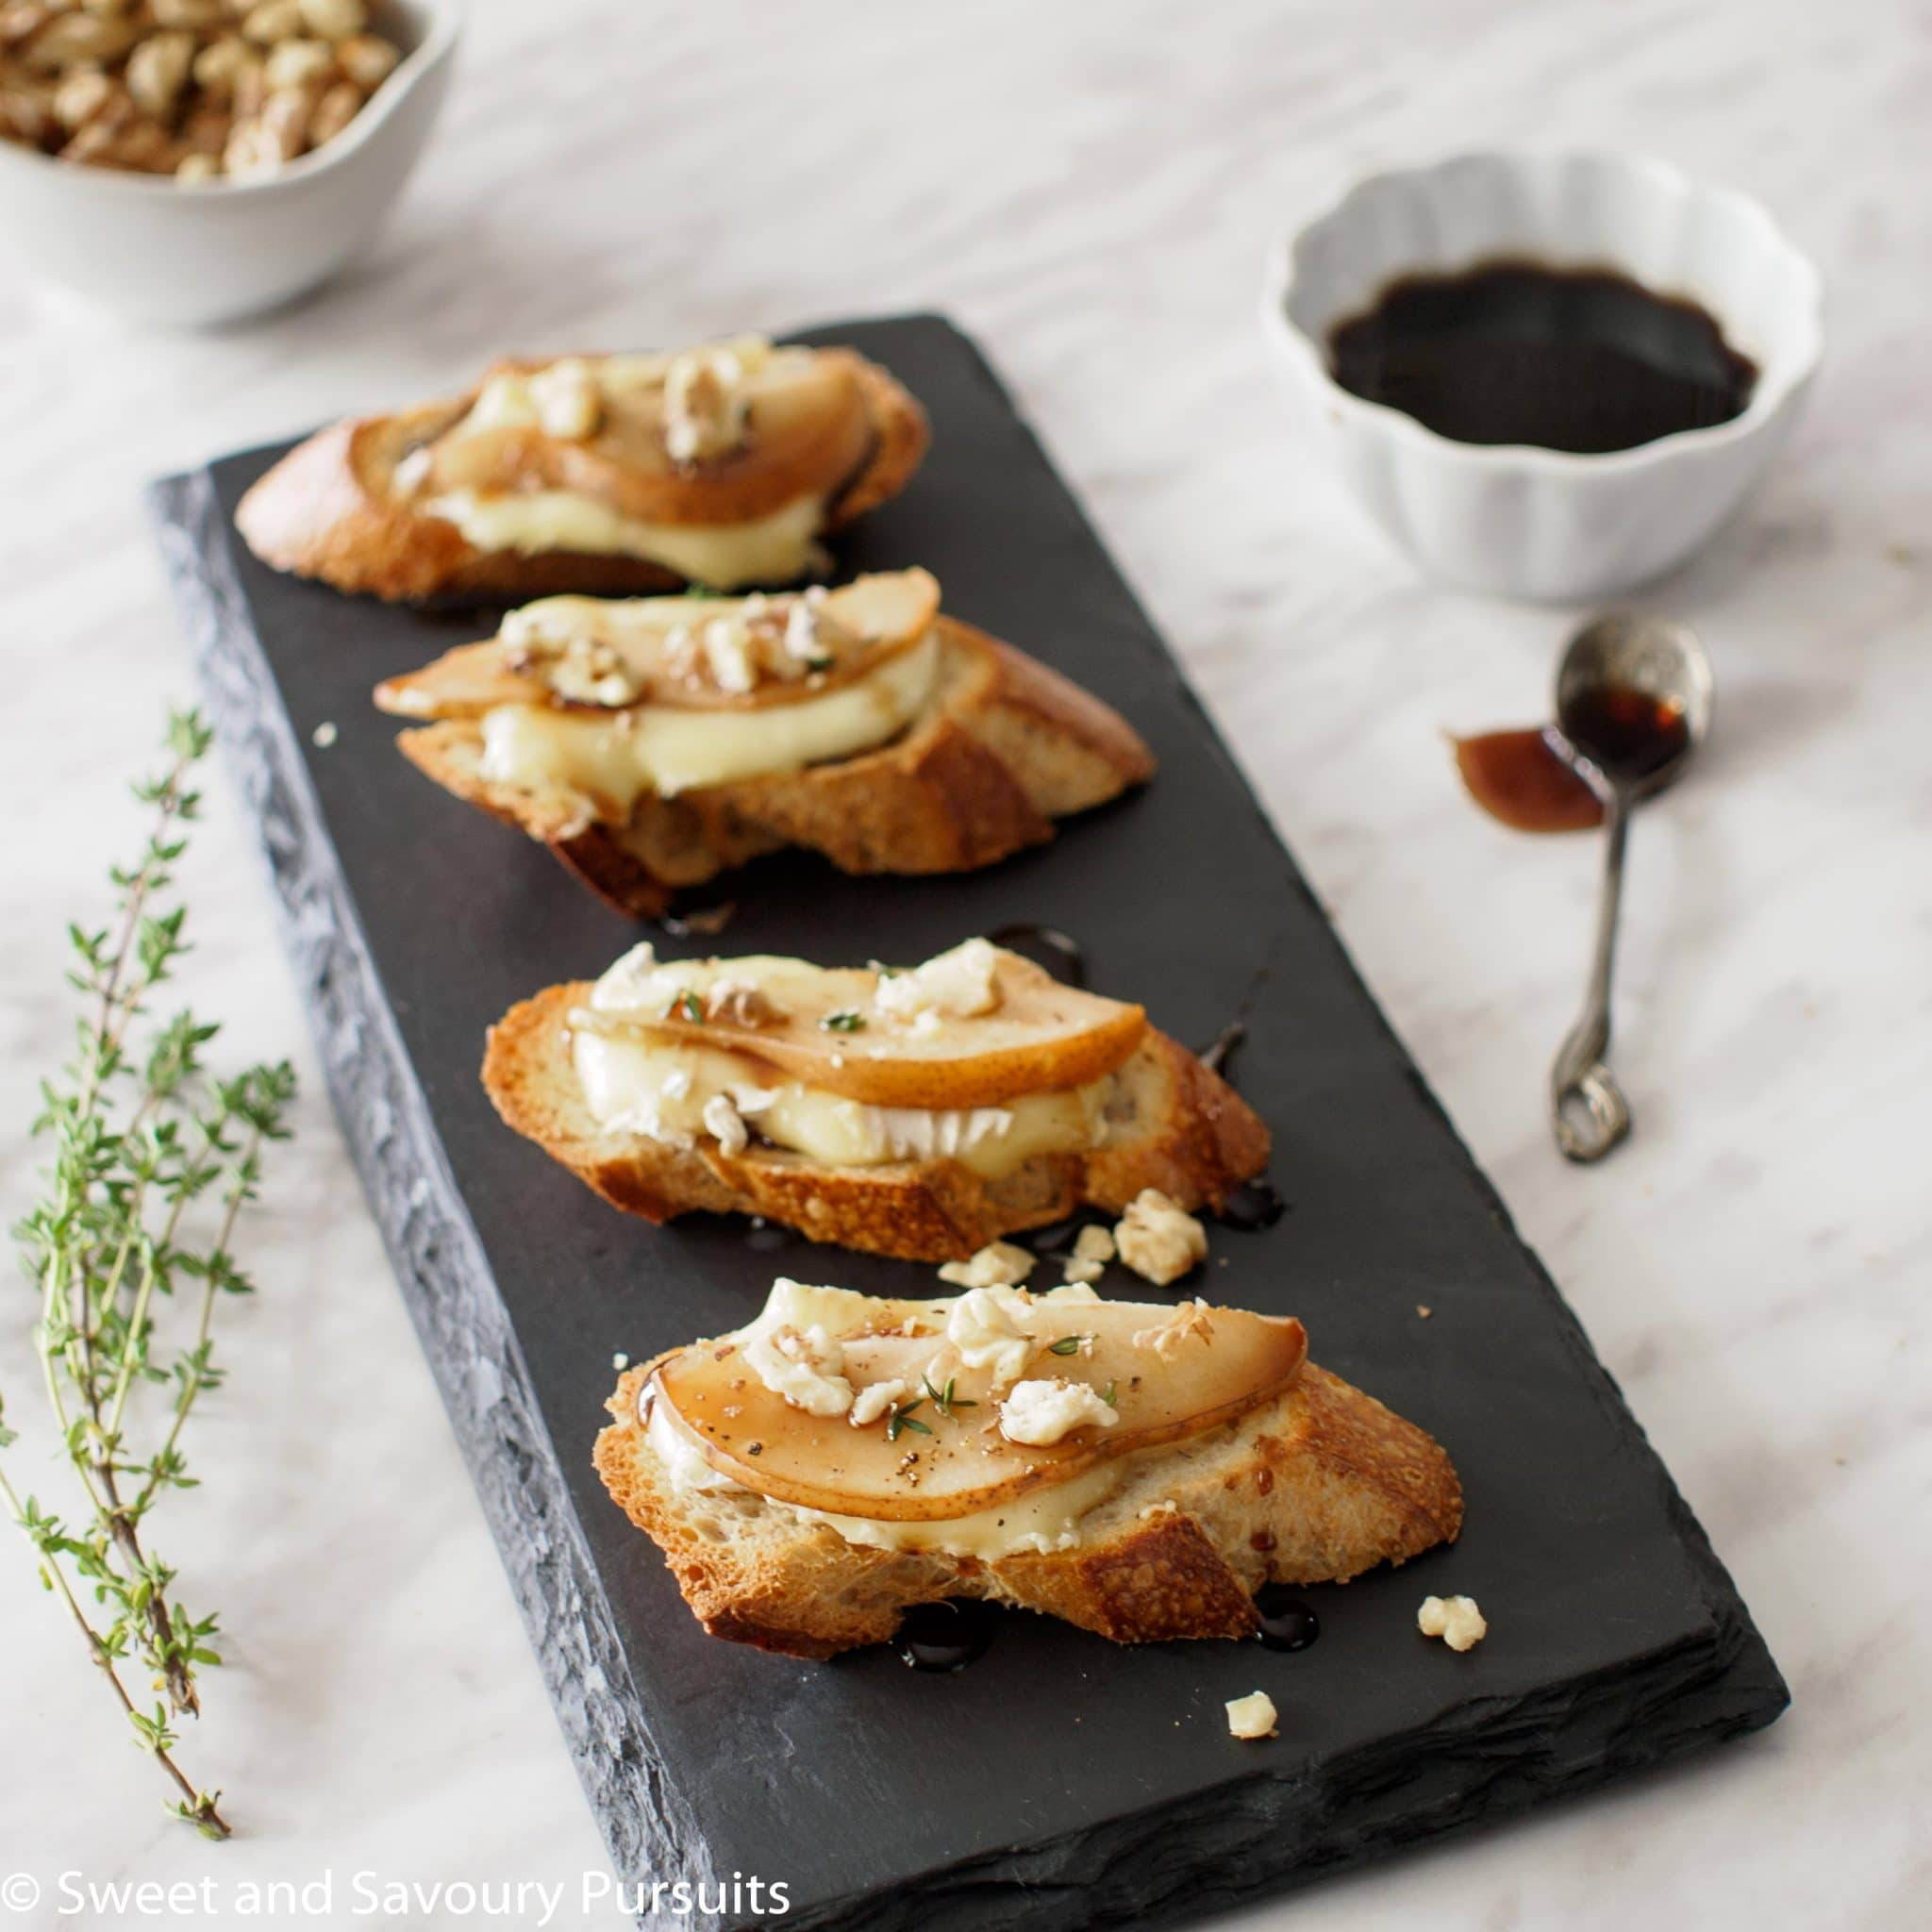 ... toasted walnuts crostini with brie dates and toasted walnuts recipes